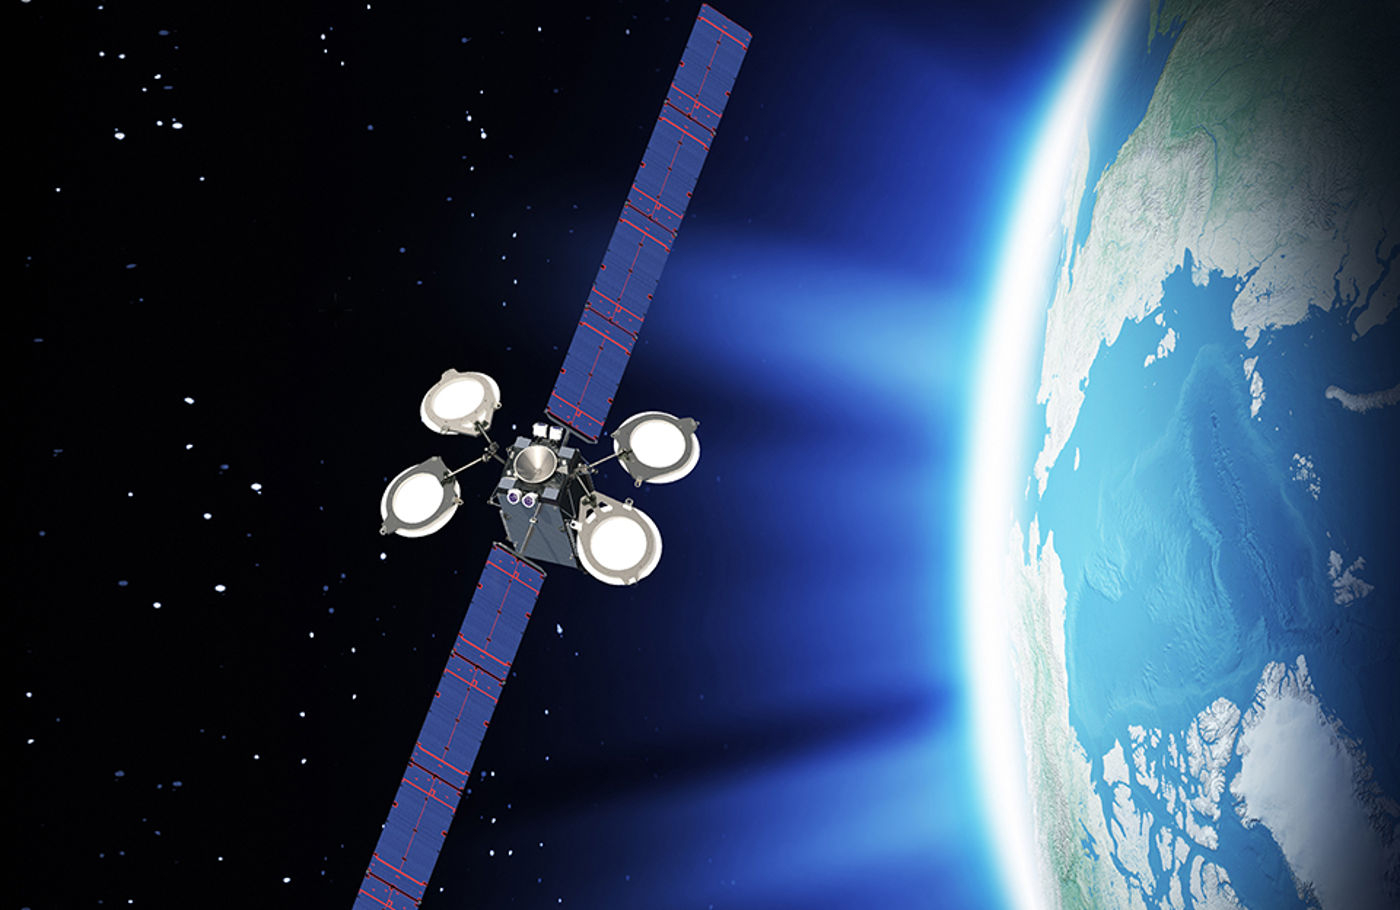 Boeing is going to produce 3D printed modular satellites